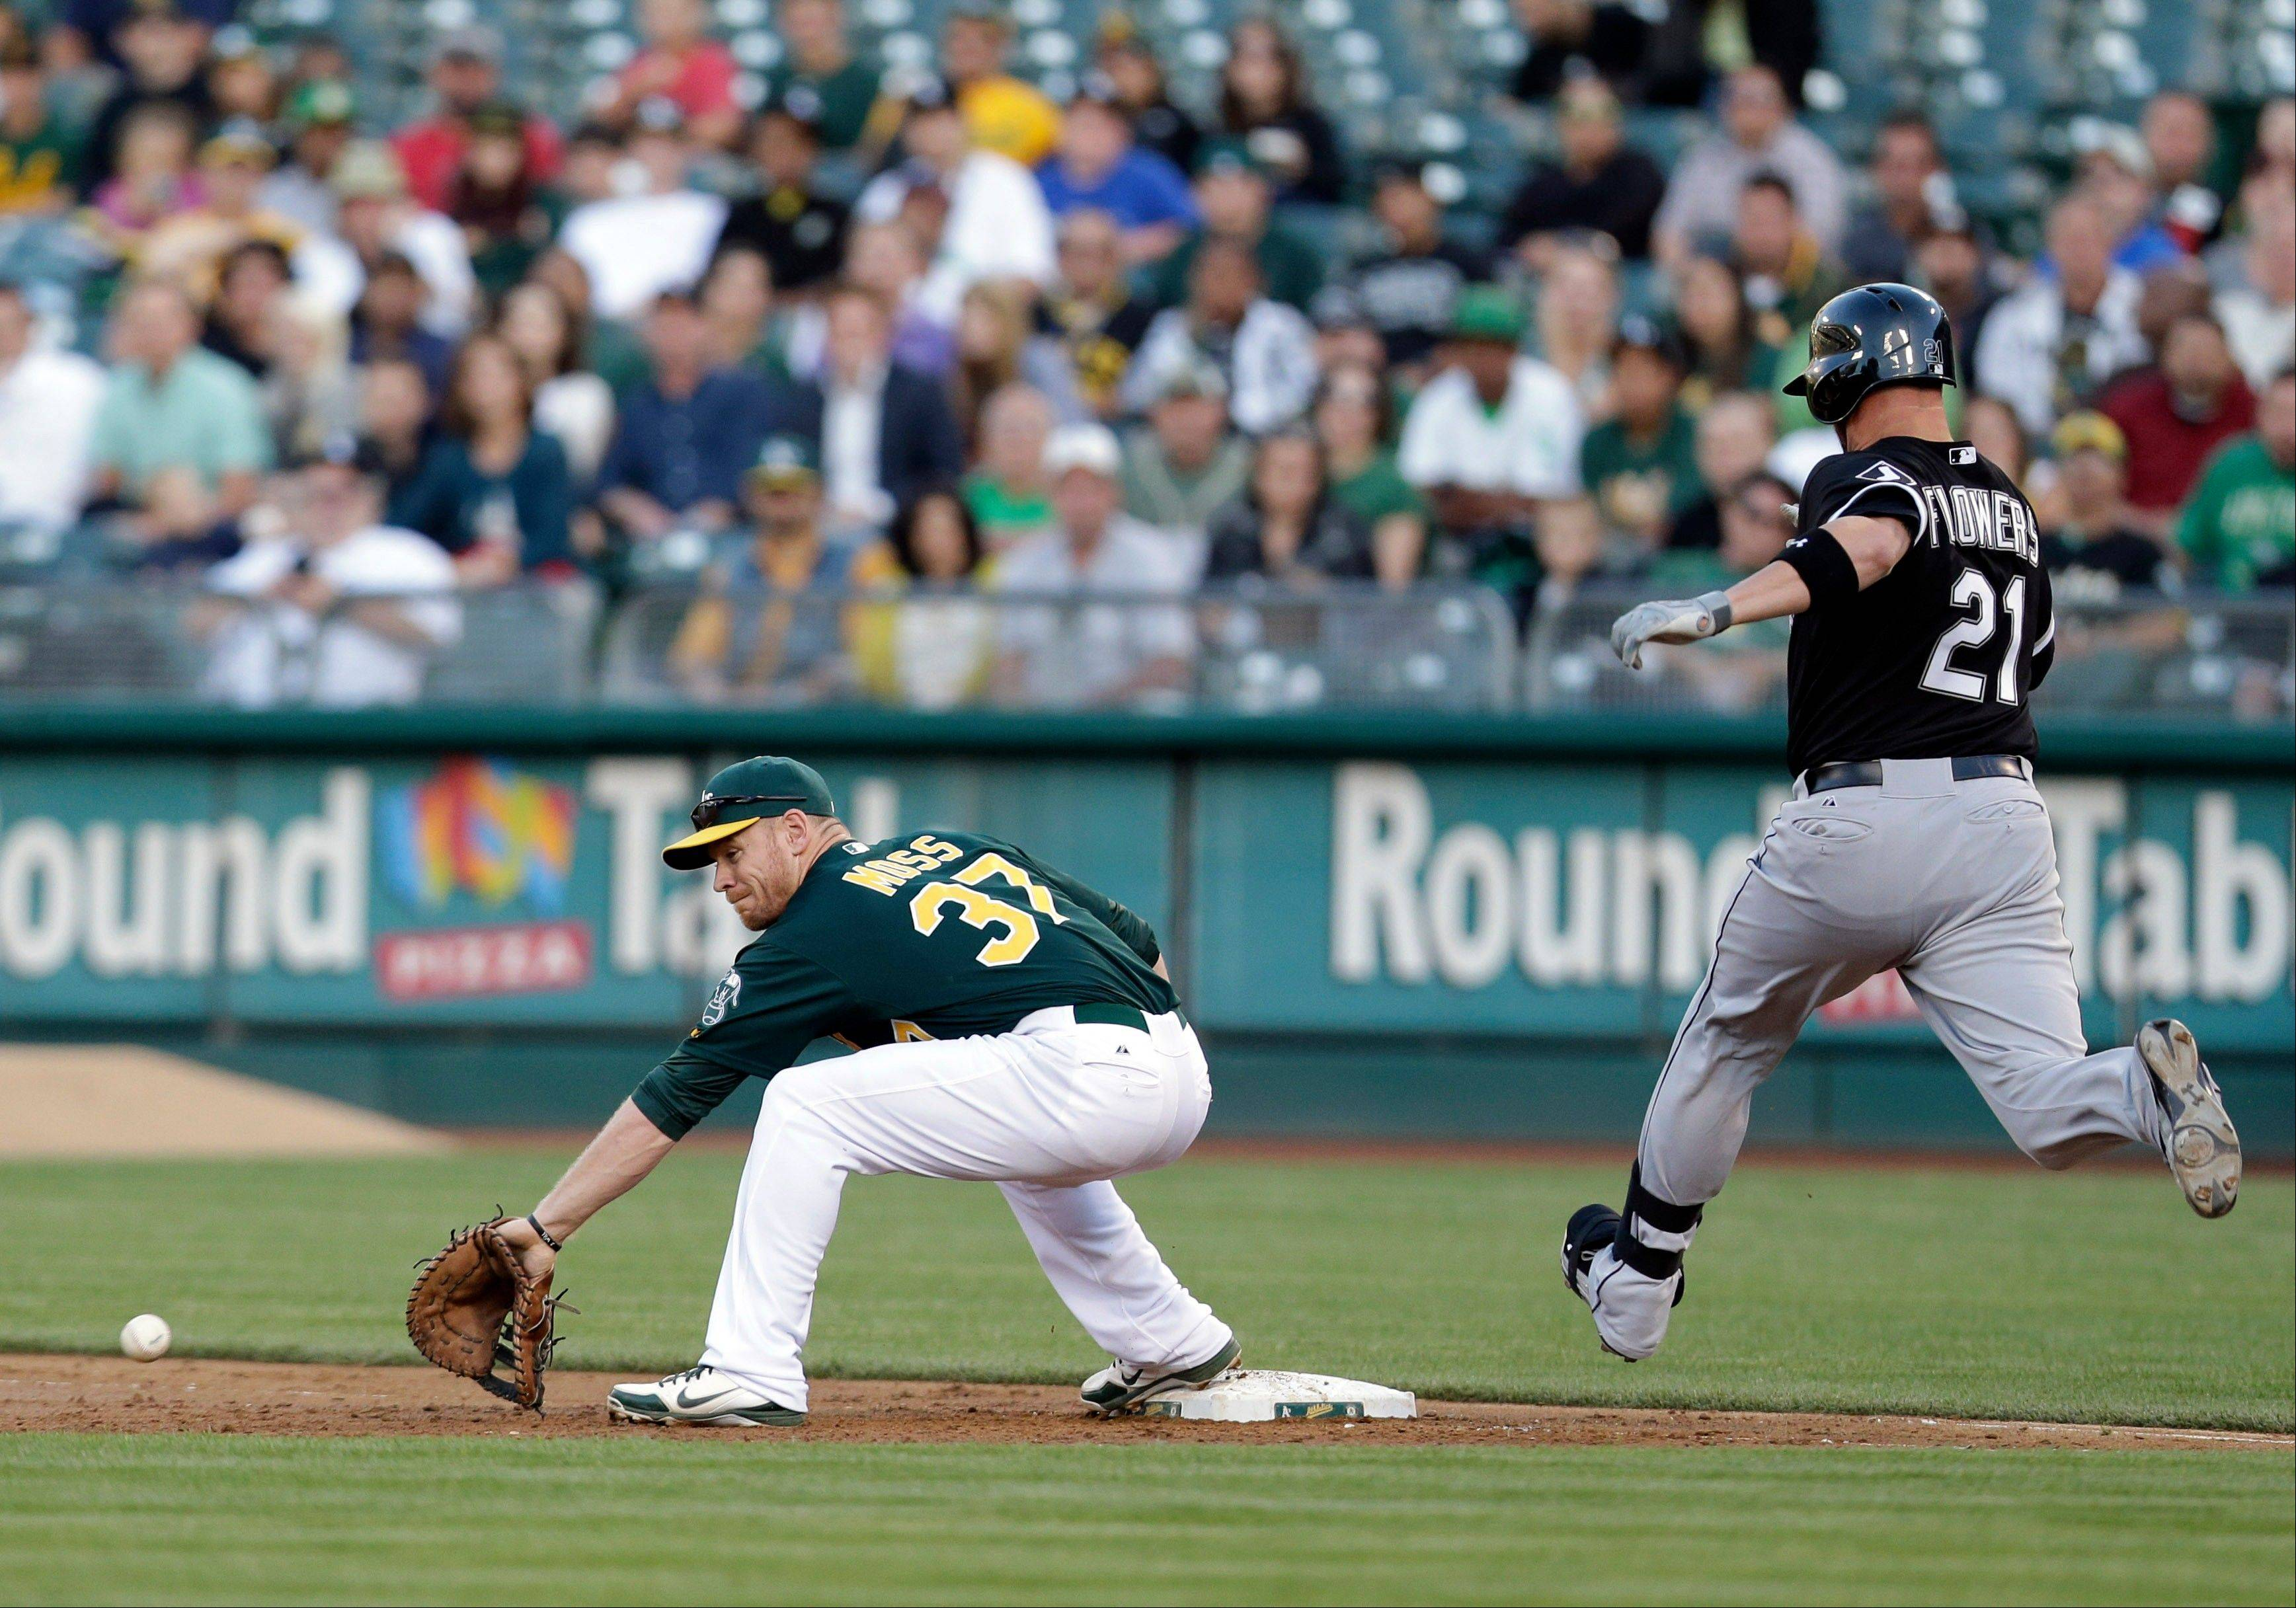 Oakland Athletics first baseman Brandon Moss, left, digs up a low throw from shortstop Jed Lowrie to put out Chicago White Sox's Tyler Flowers (21) during the third inning of a baseball game on Friday, May 31, 2013, in Oakland, Calif.